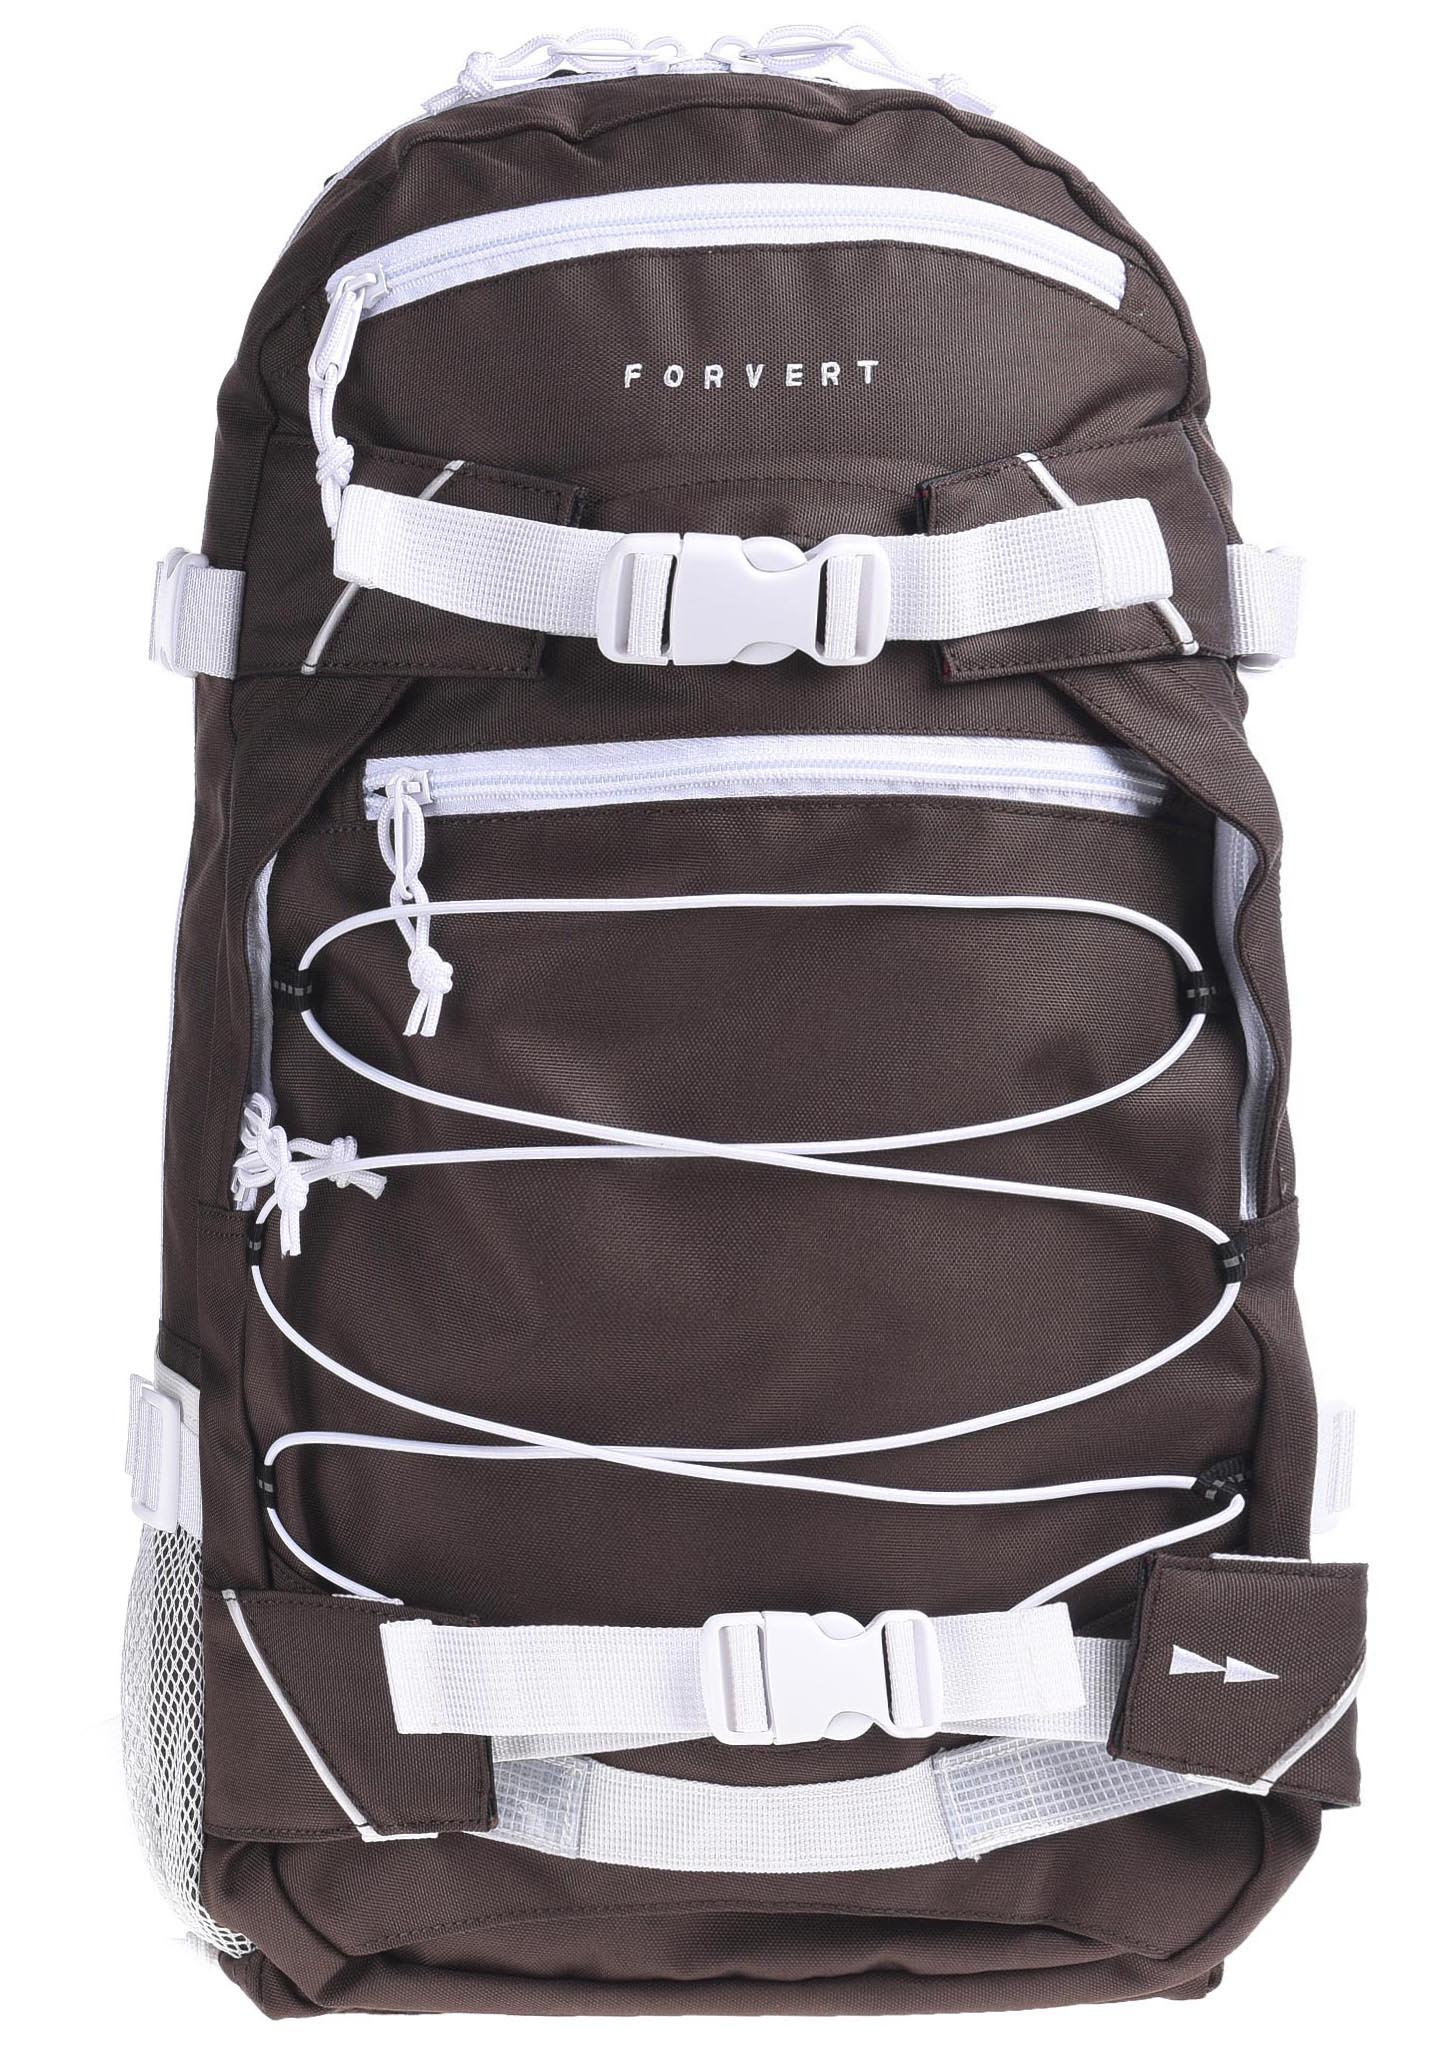 a3804c9f2377b FORVERT Ice Louis 20L - Rucksack - Braun - Planet Sports